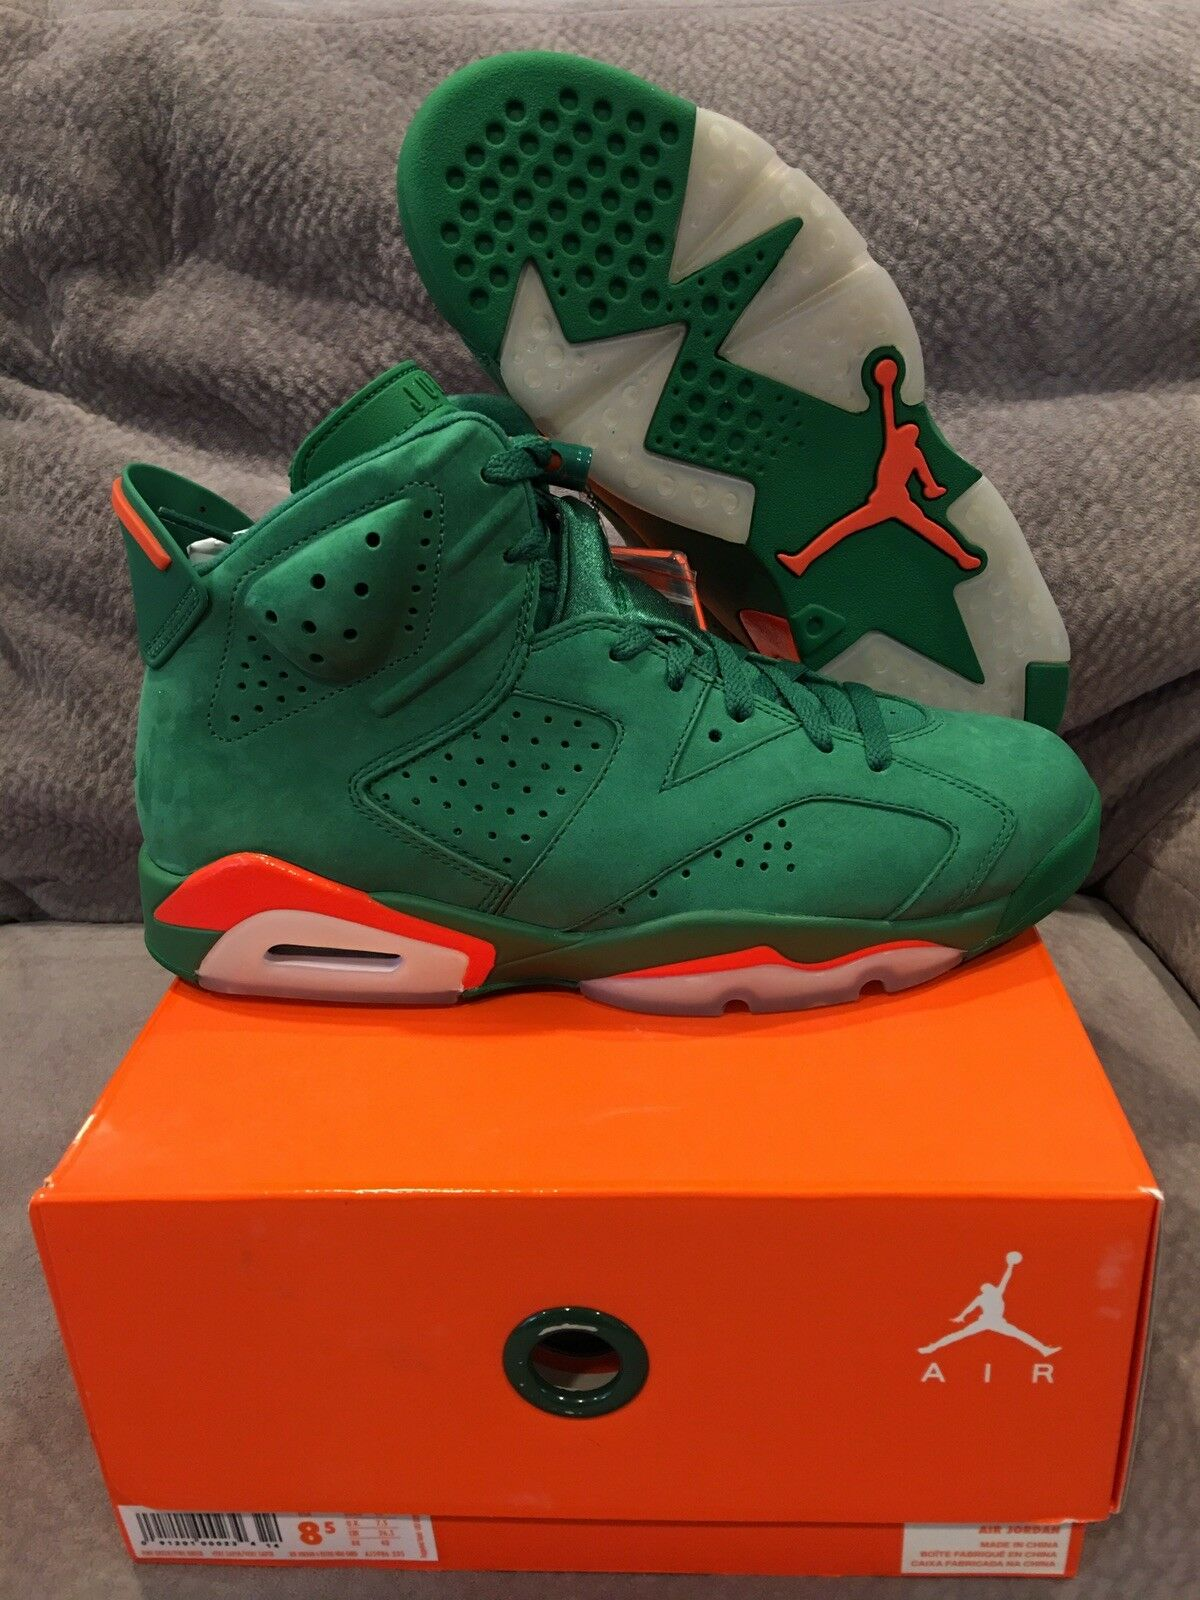 Brand New Nike Air Jordan 6 Retro Gatorade Nrg Size 8.5 100% Authetic DS in hand